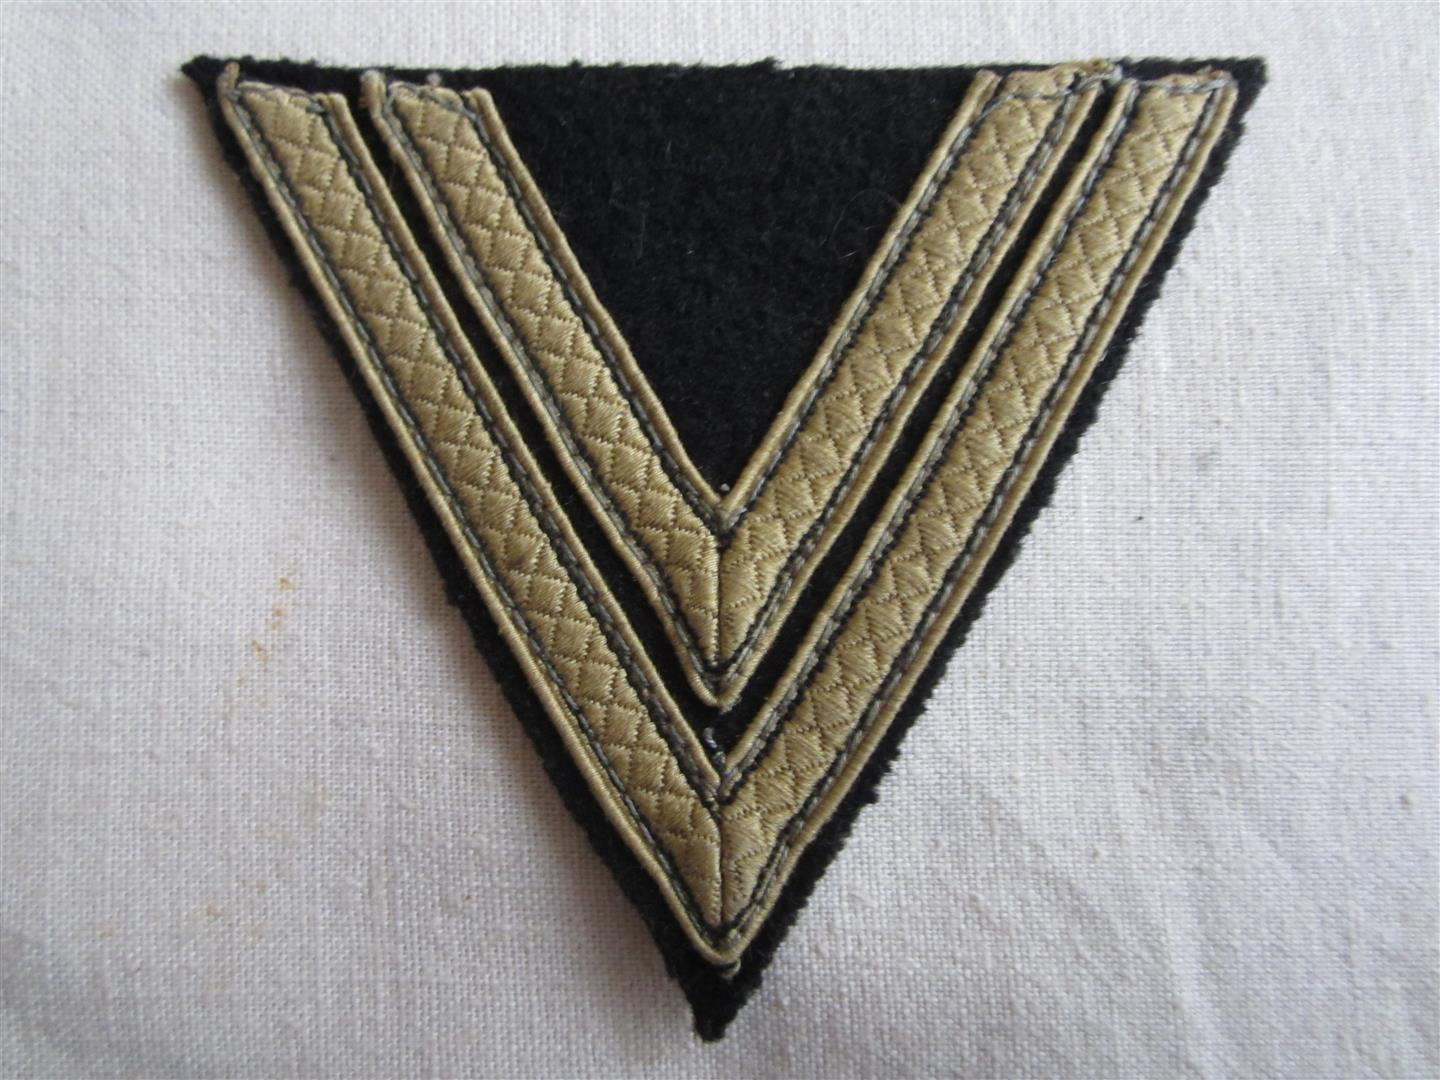 WW2 SS Tropical Rottenfuhrer Chevron